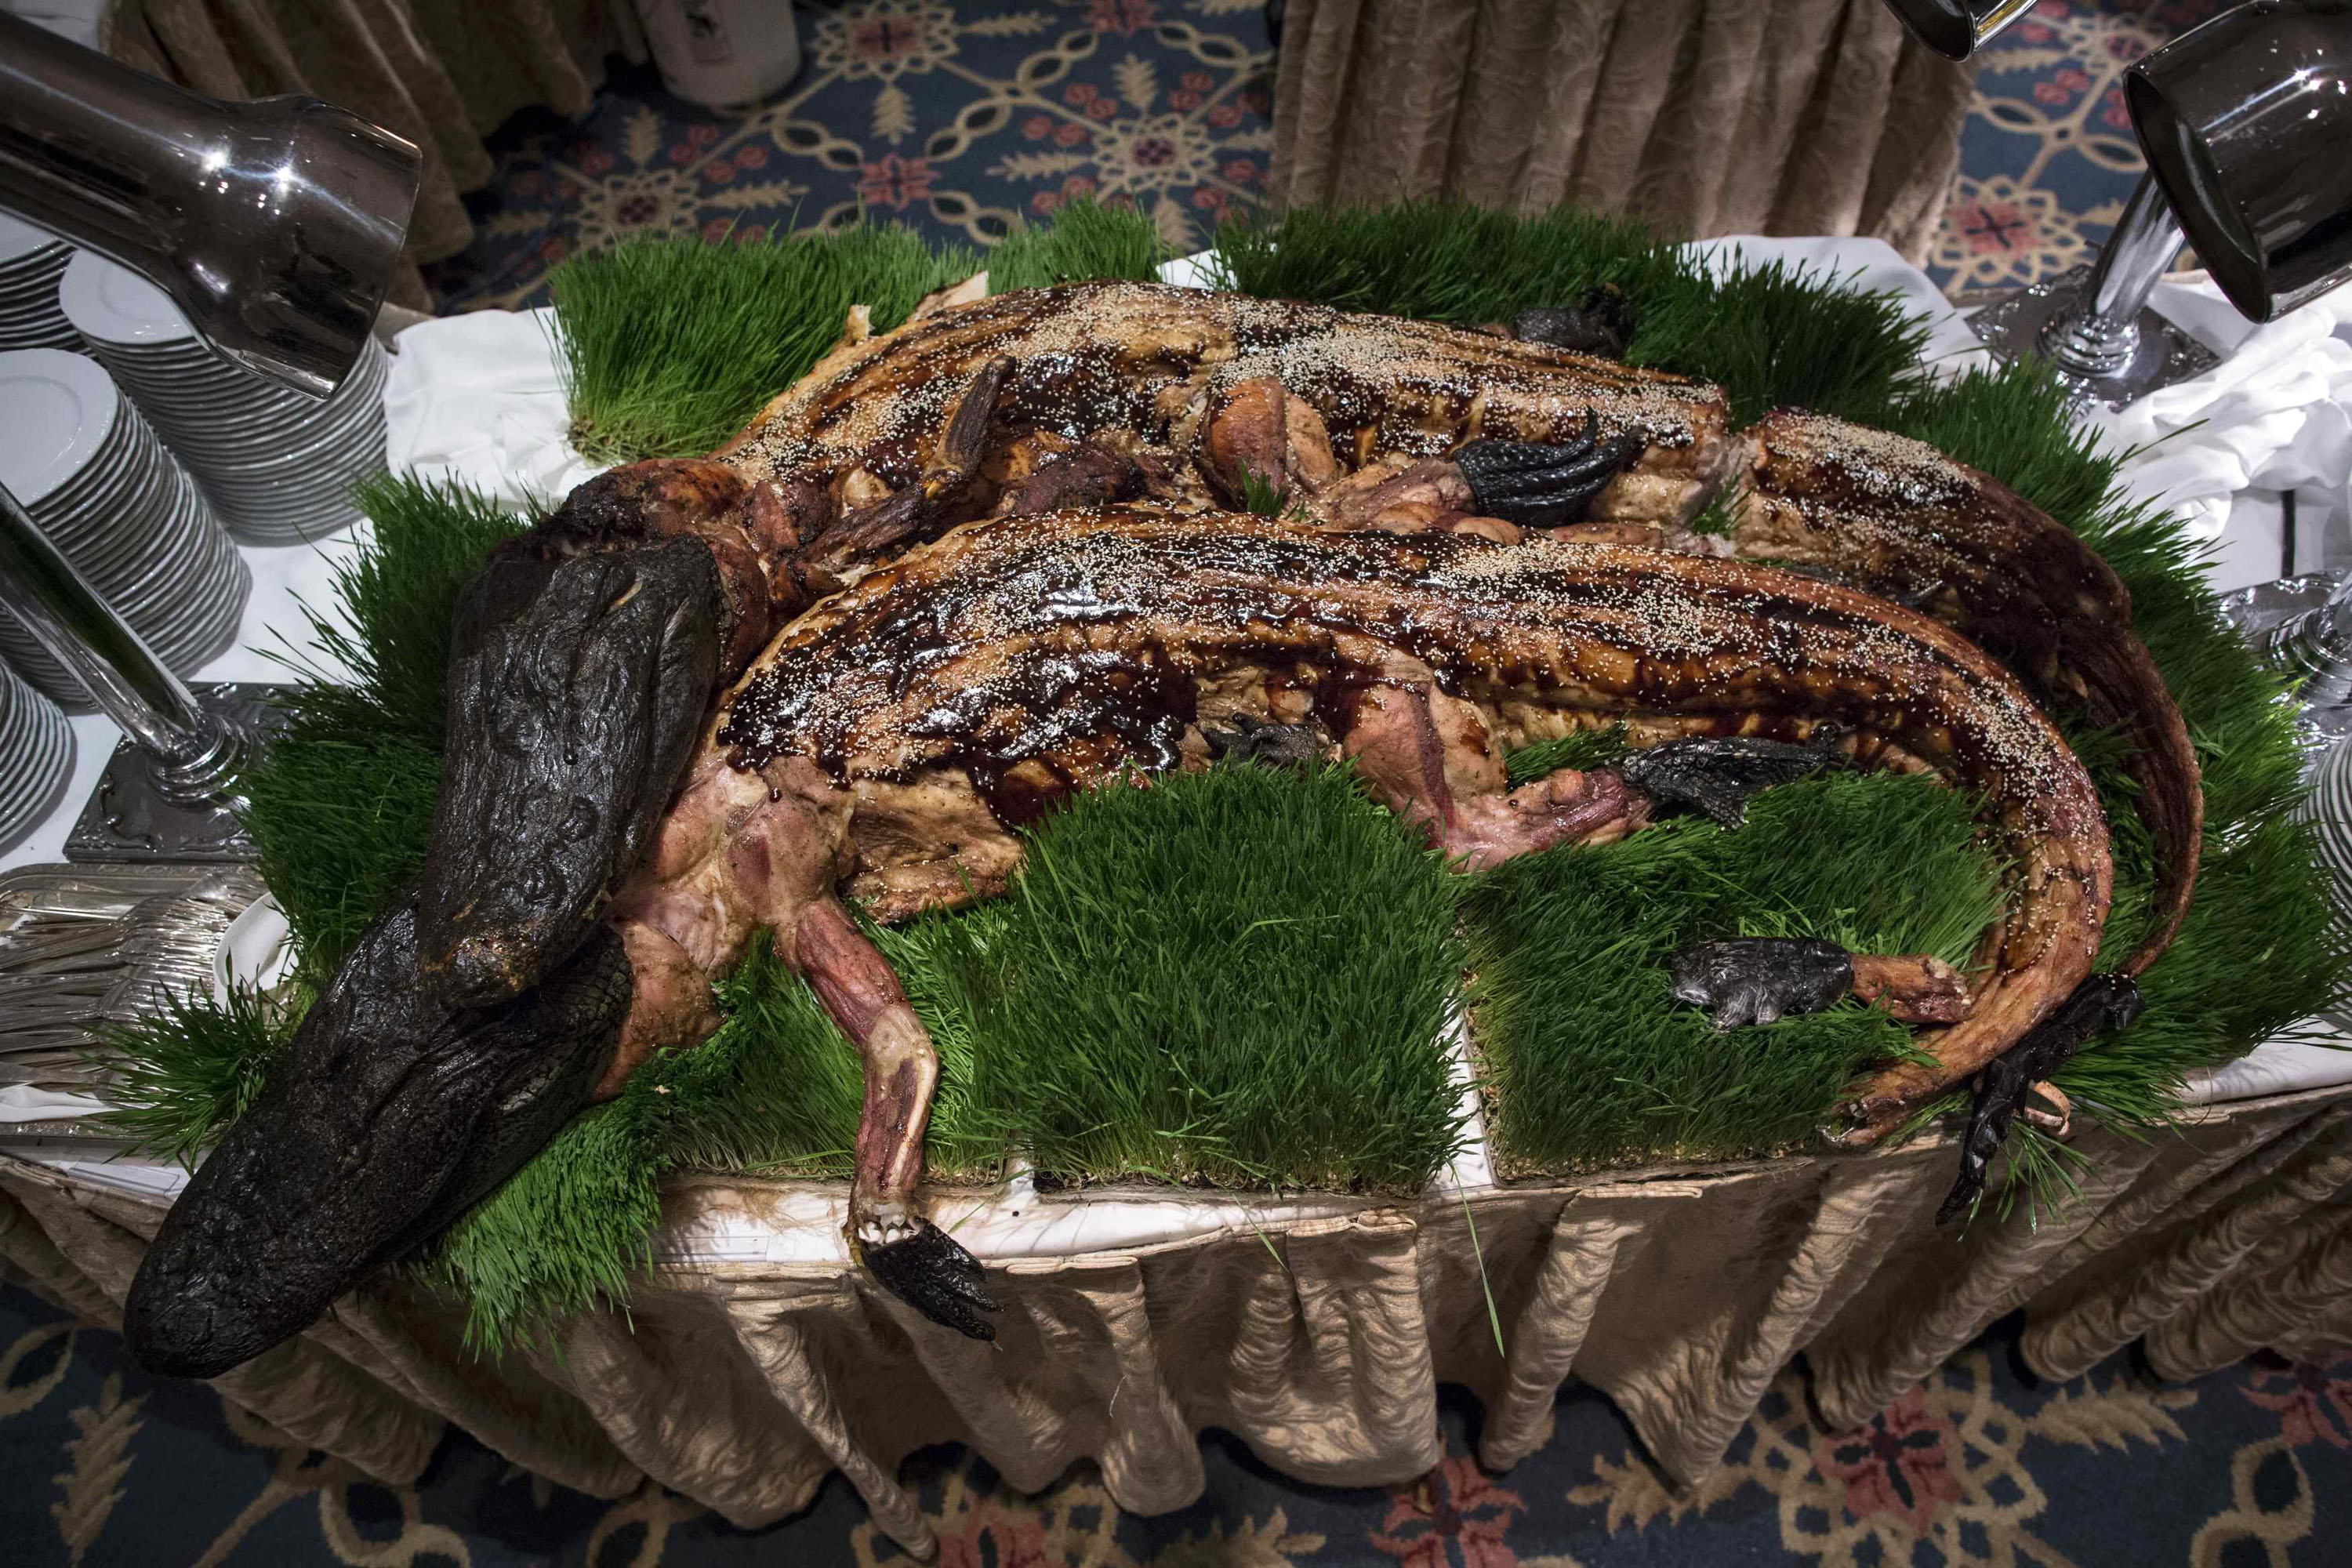 Whole cooked alligators are displayed before being served at the 110th Explorers Club Annual Dinner at the Waldorf Astoria in New York City March 15, 2014. The club promotes the scientific exploration of land, sea, air and space and featured catering by chef and exotic creator Gene Rurka.